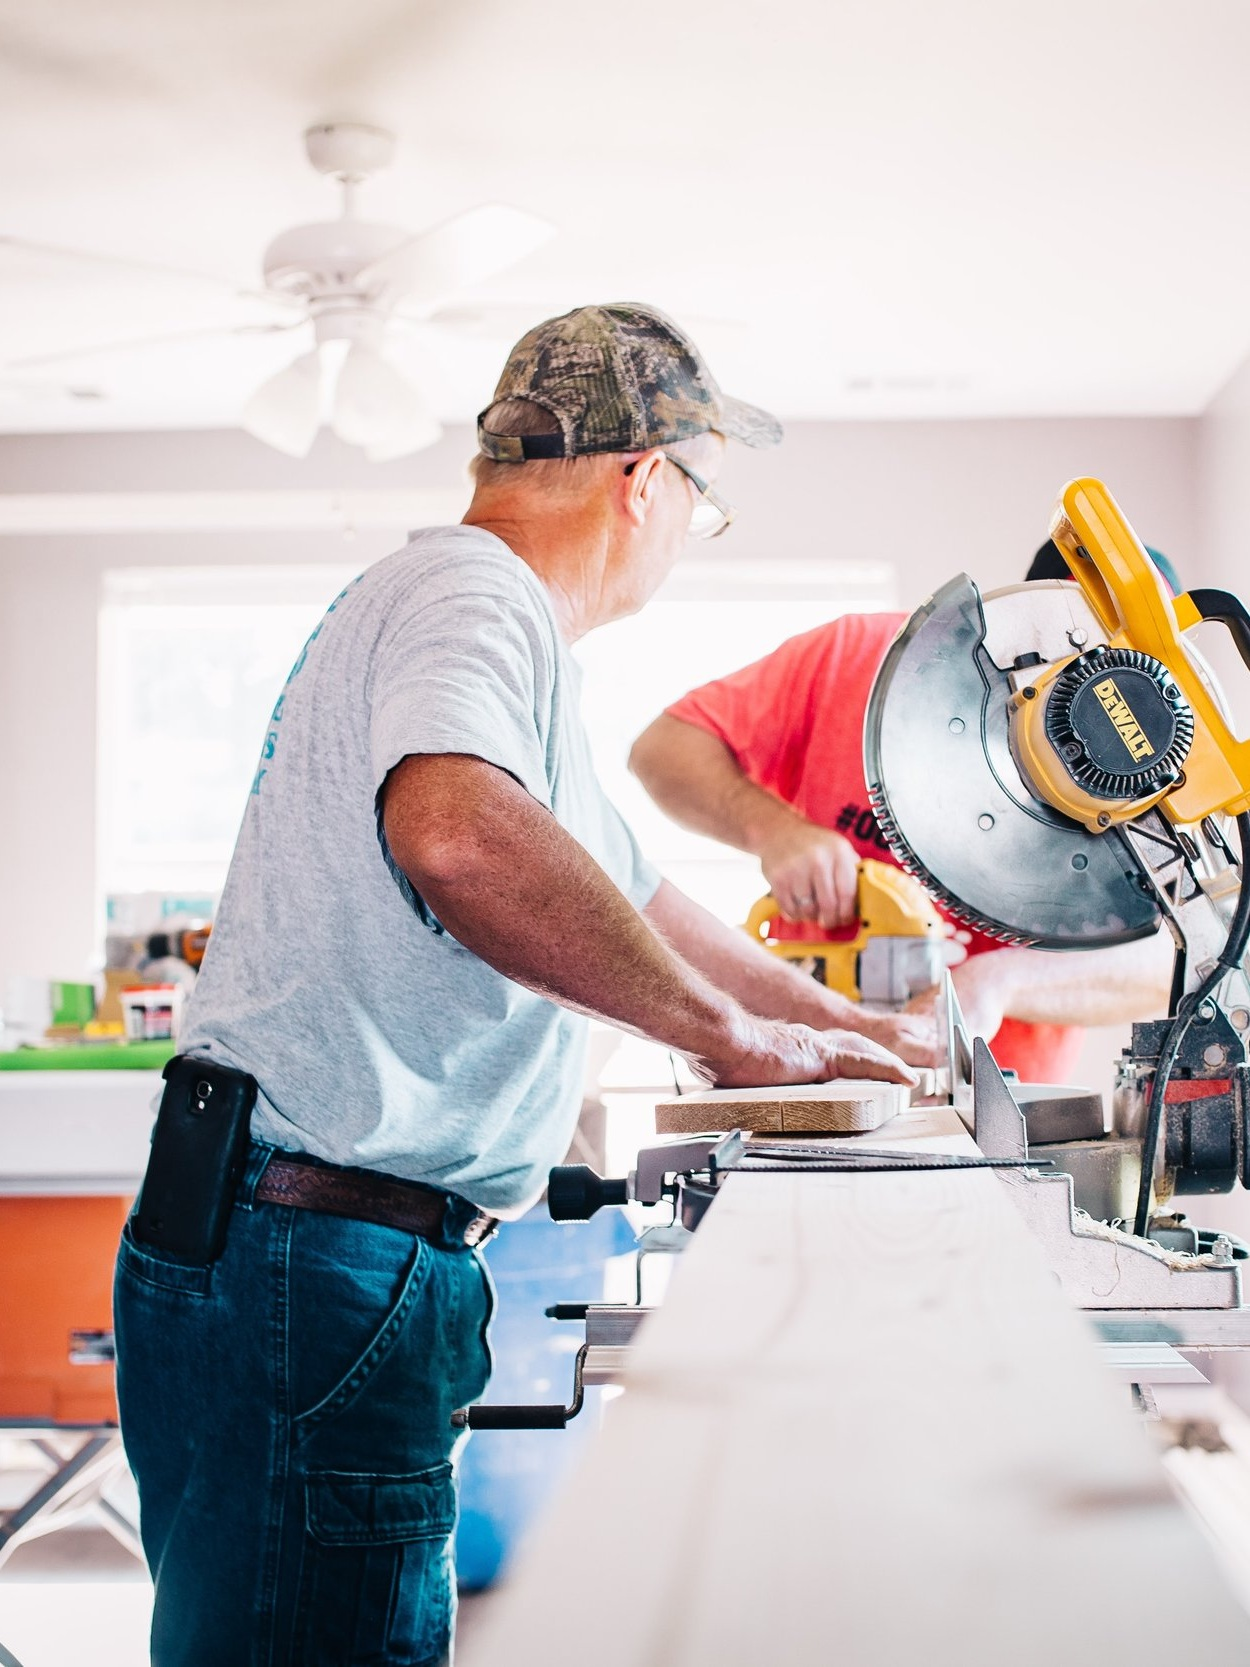 Mod Squad - Mod Squad is a social enterprise serving as Central Ohio's one-stop shop for handyman services.Got a honey-do list, and honey, you don't? We're here for you. Mod Squad can fix it, modify it or replace it with a trusted team of home maintenance pros.Learn More